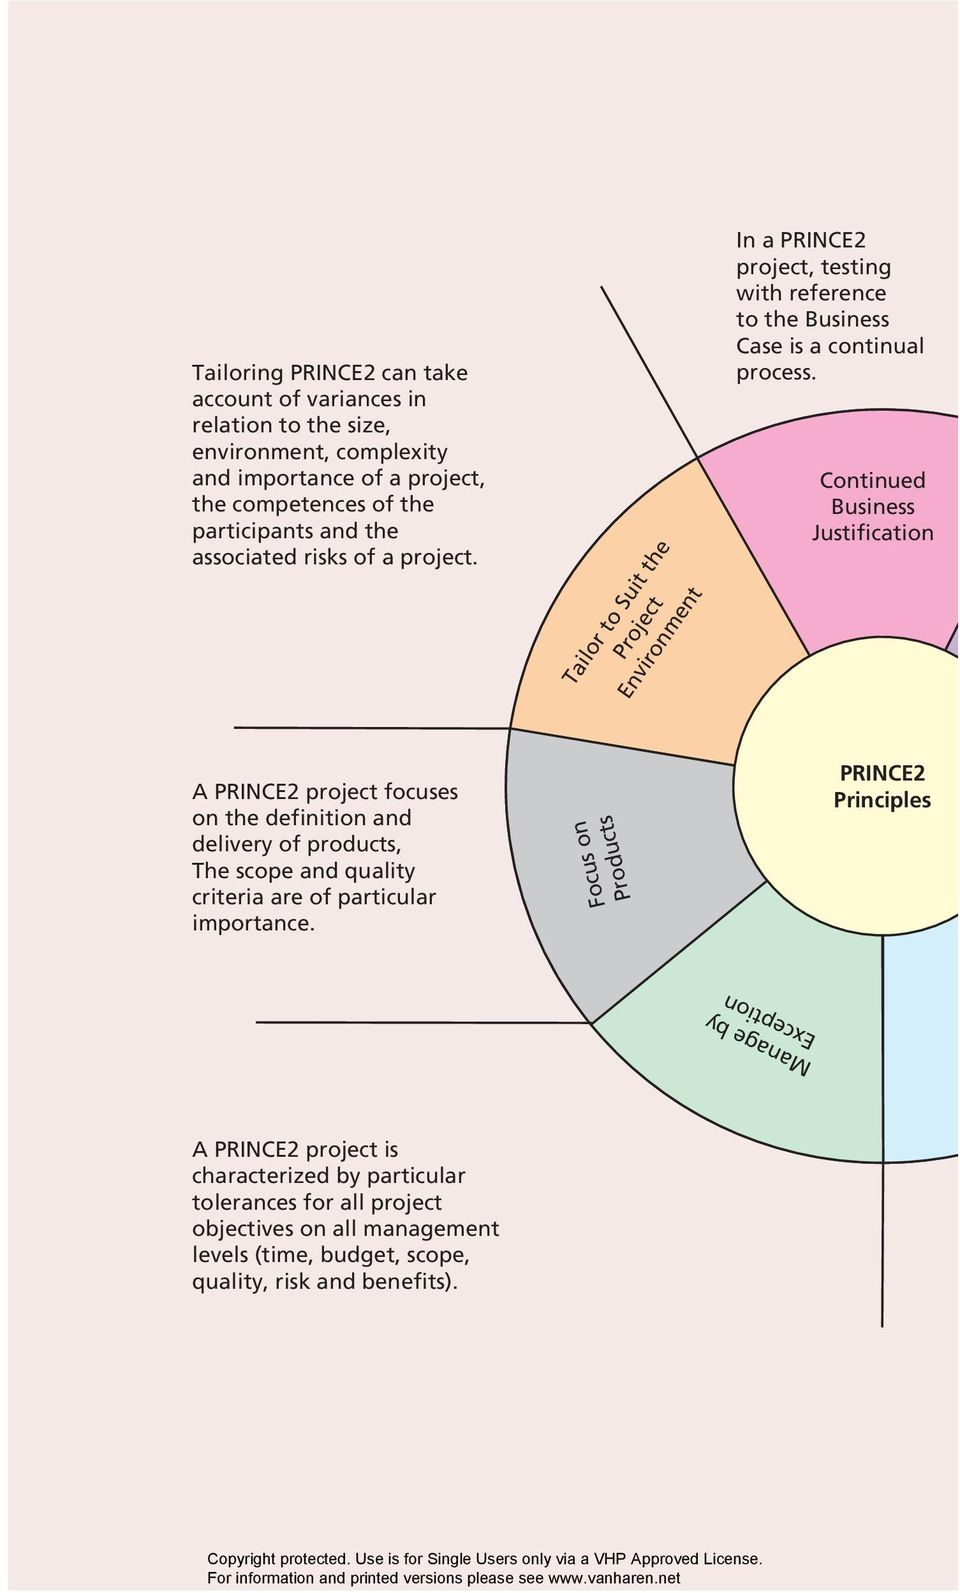 Continued Business Justification A PRINCE2 project focuses on the definition and delivery of products, The scope and quality criteria are of particular importance.